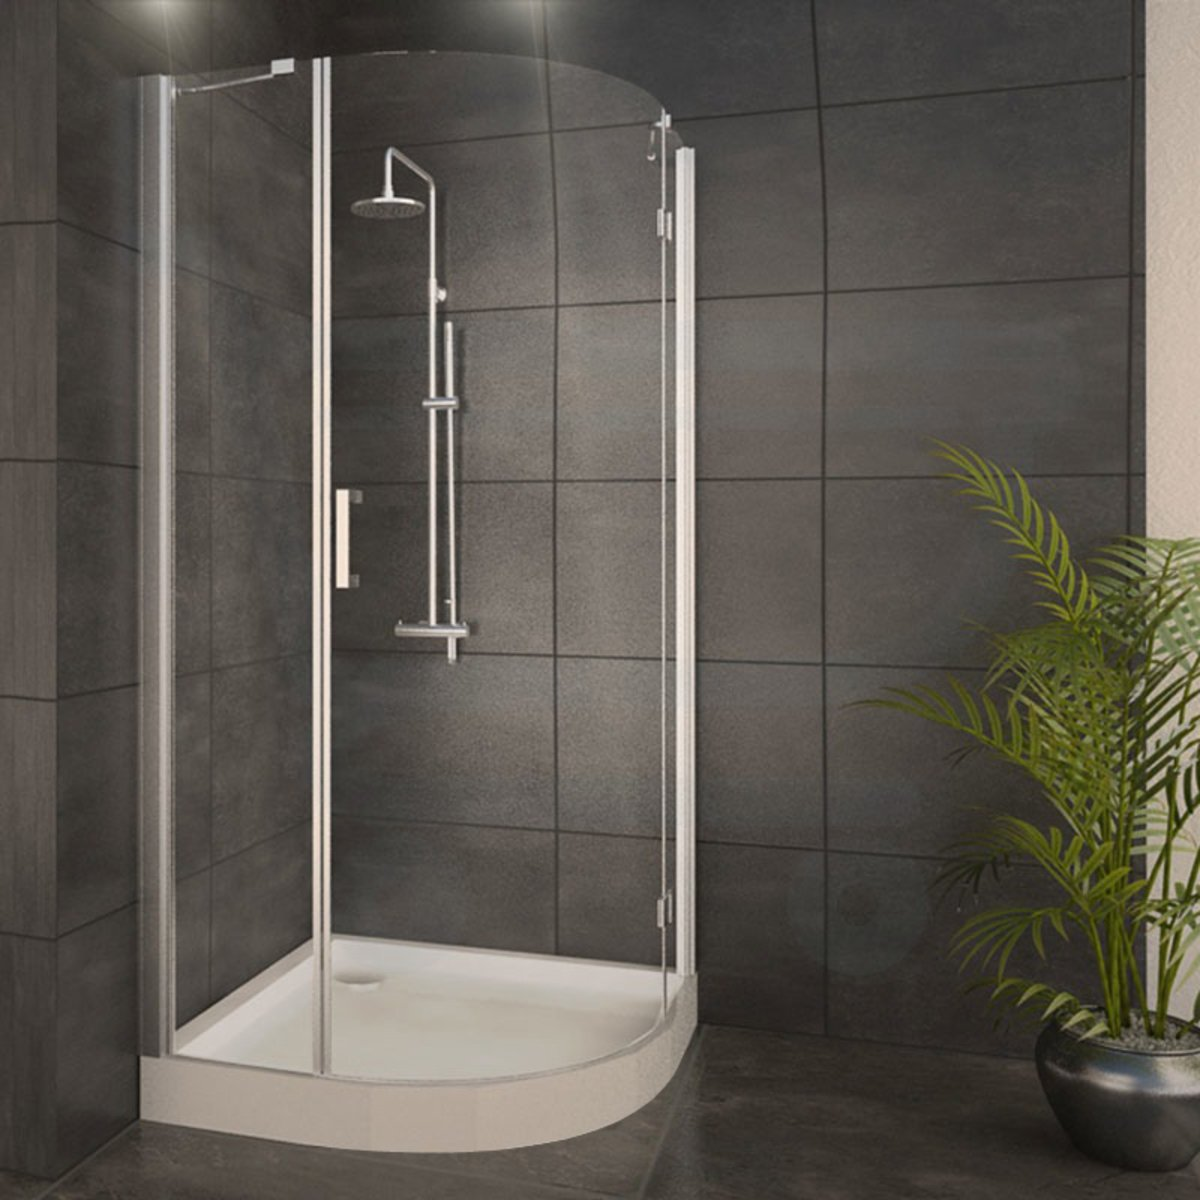 adema glass cabine de douche quart de rond avec 1 porte. Black Bedroom Furniture Sets. Home Design Ideas